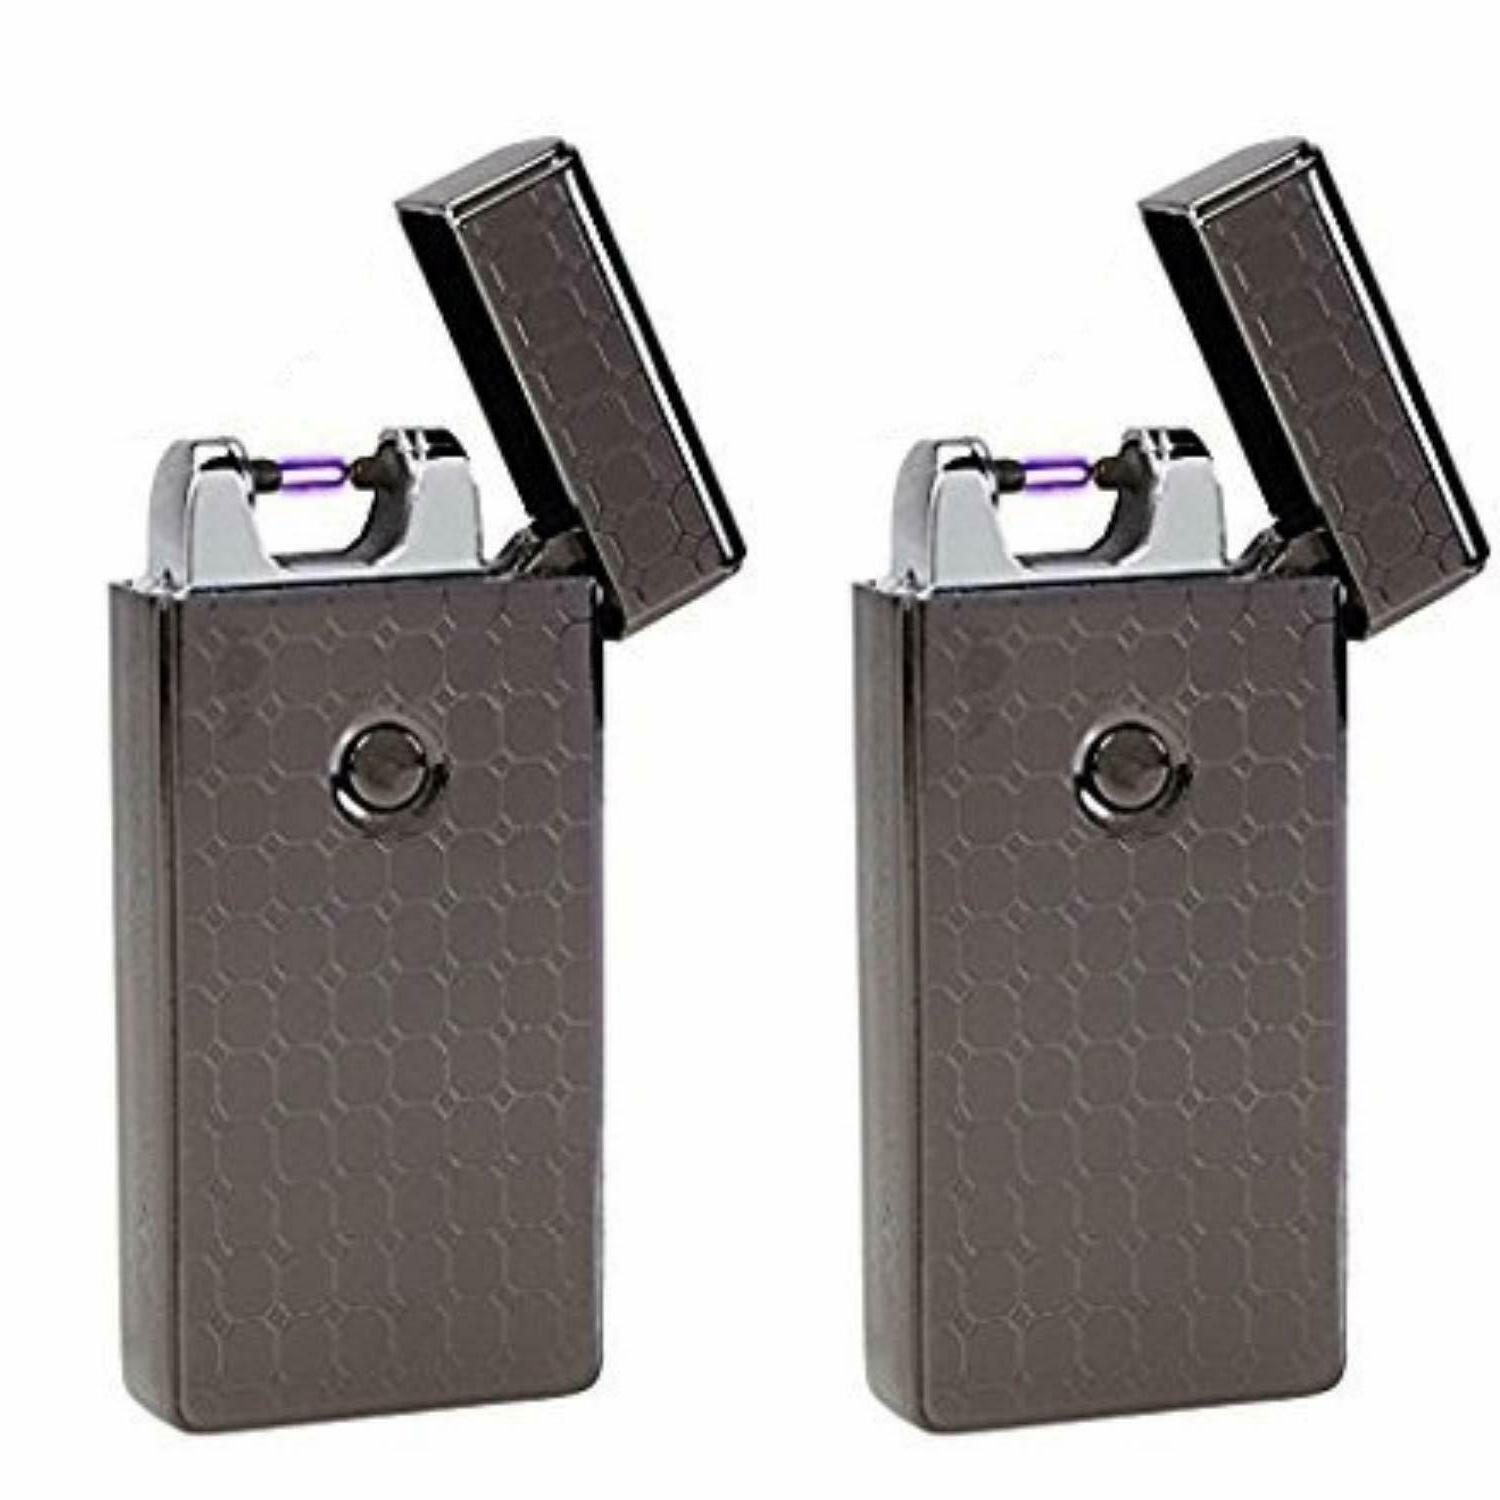 Saberlight 2 Rechargeable Lighter - - Plasma Lighter - Rechargeable - no